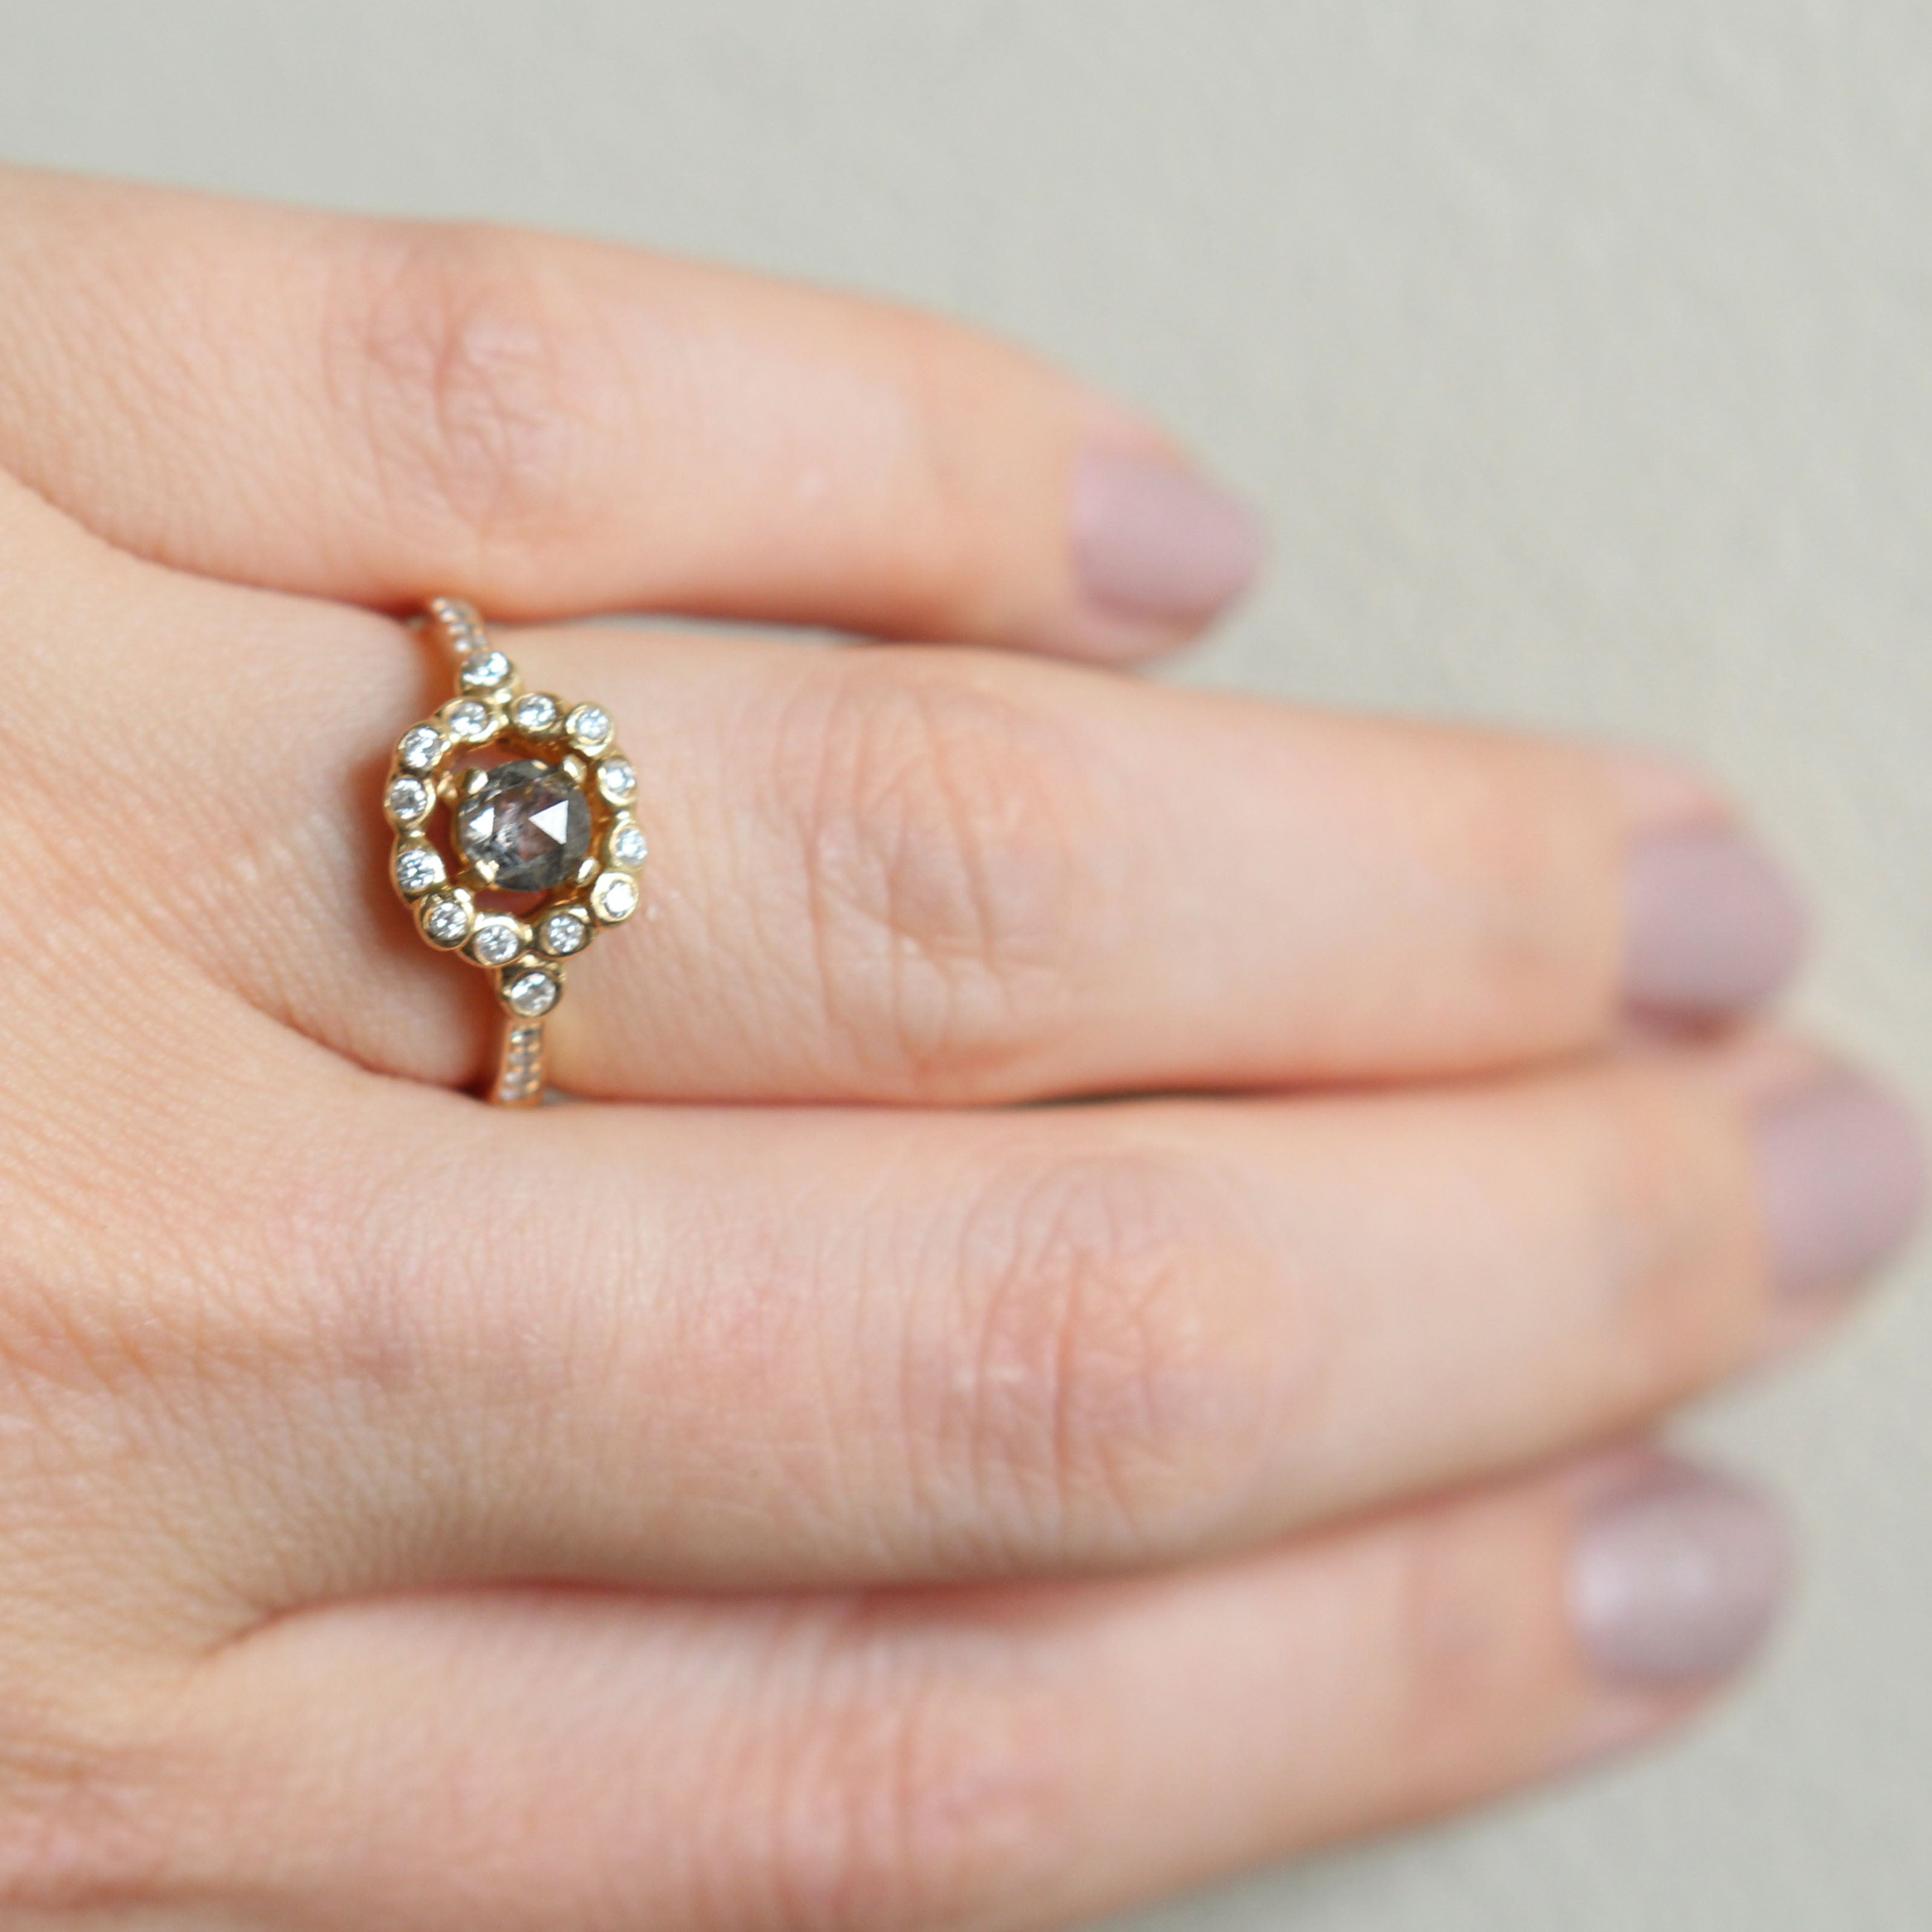 Marie - Bezel Halo Antique Style Diamond Ring - 14k yellow gold - Ready to size and ship